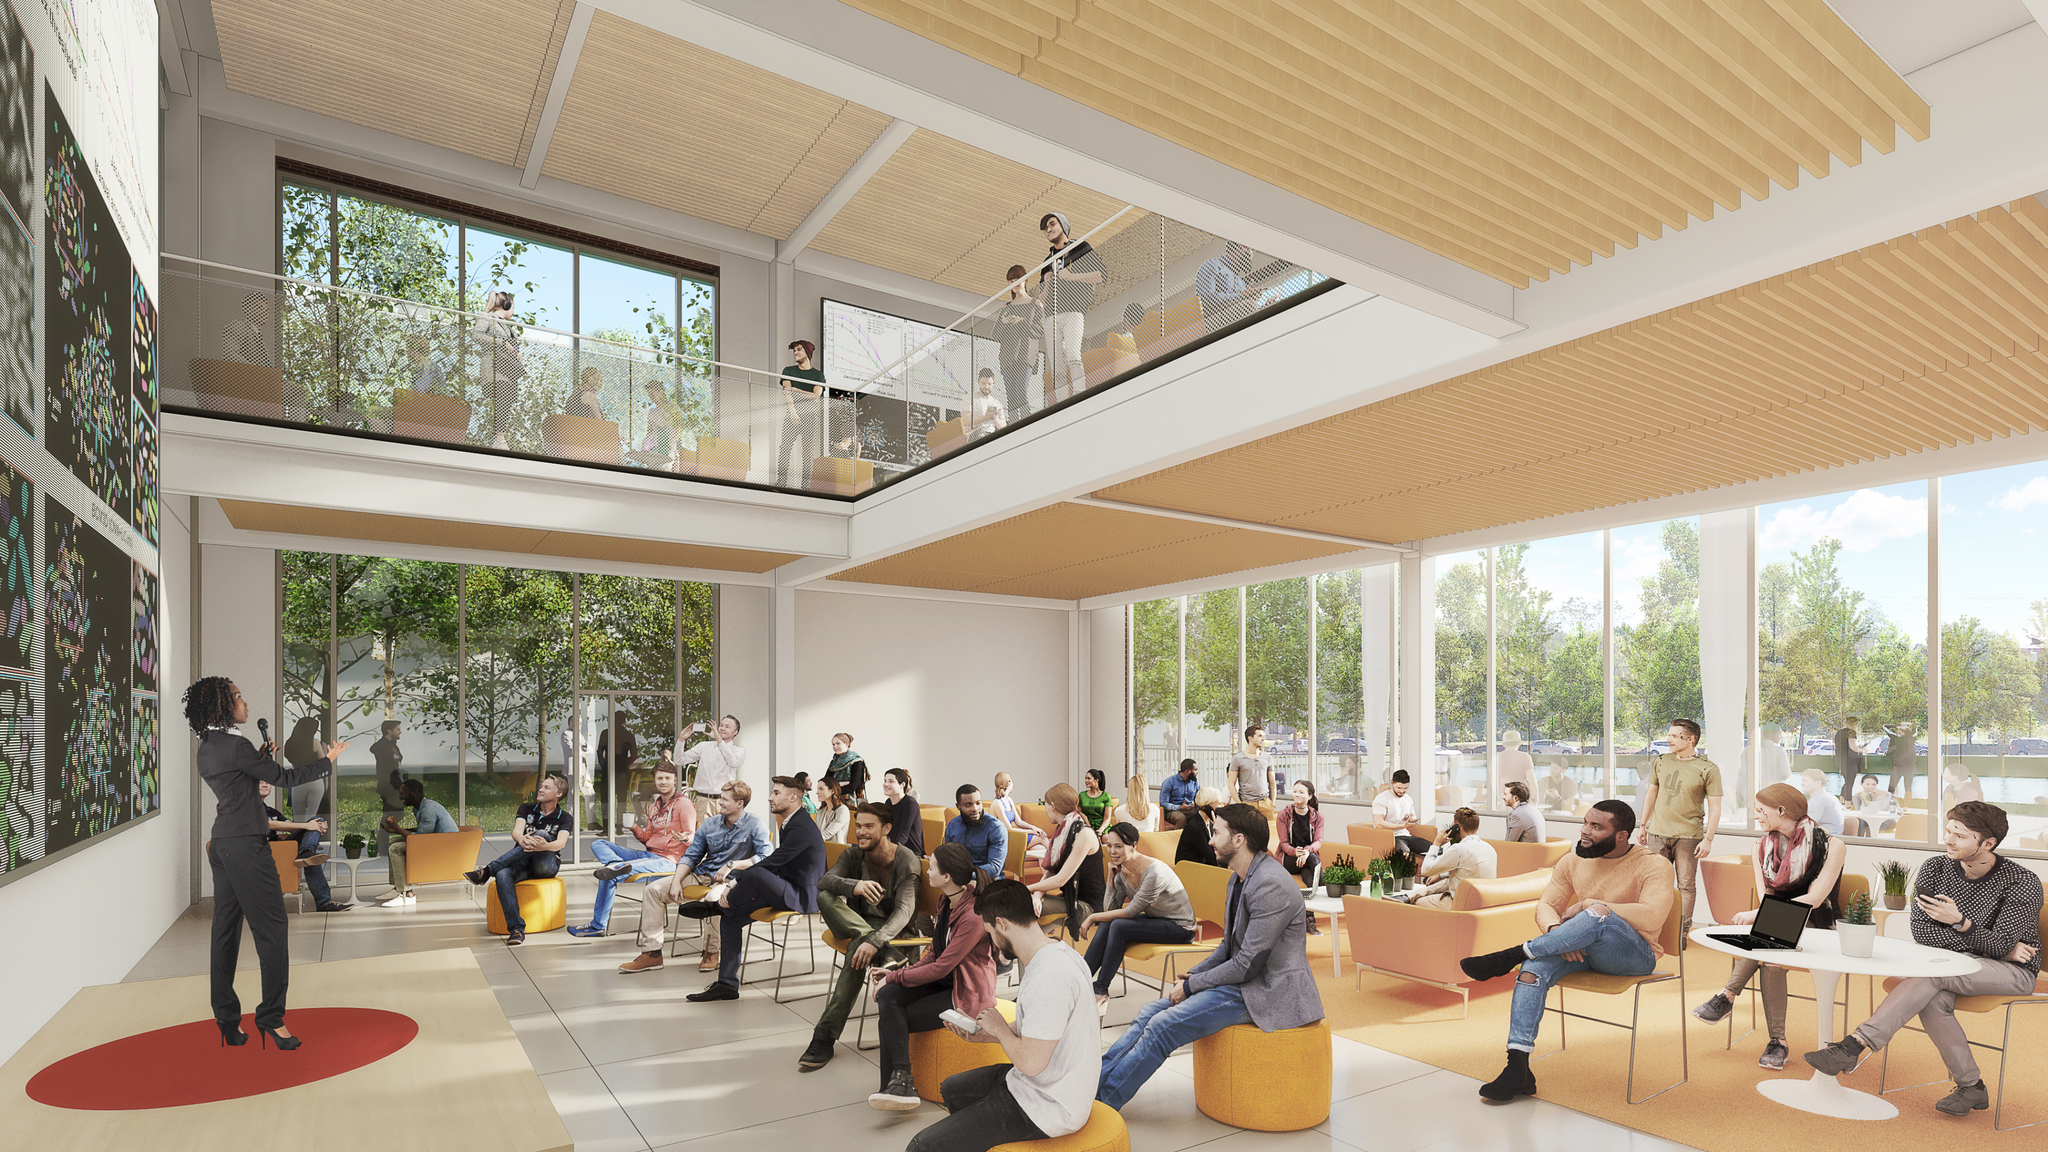 The new building will have event space for Datapalooza, Women in Data Science, and guest speakers.